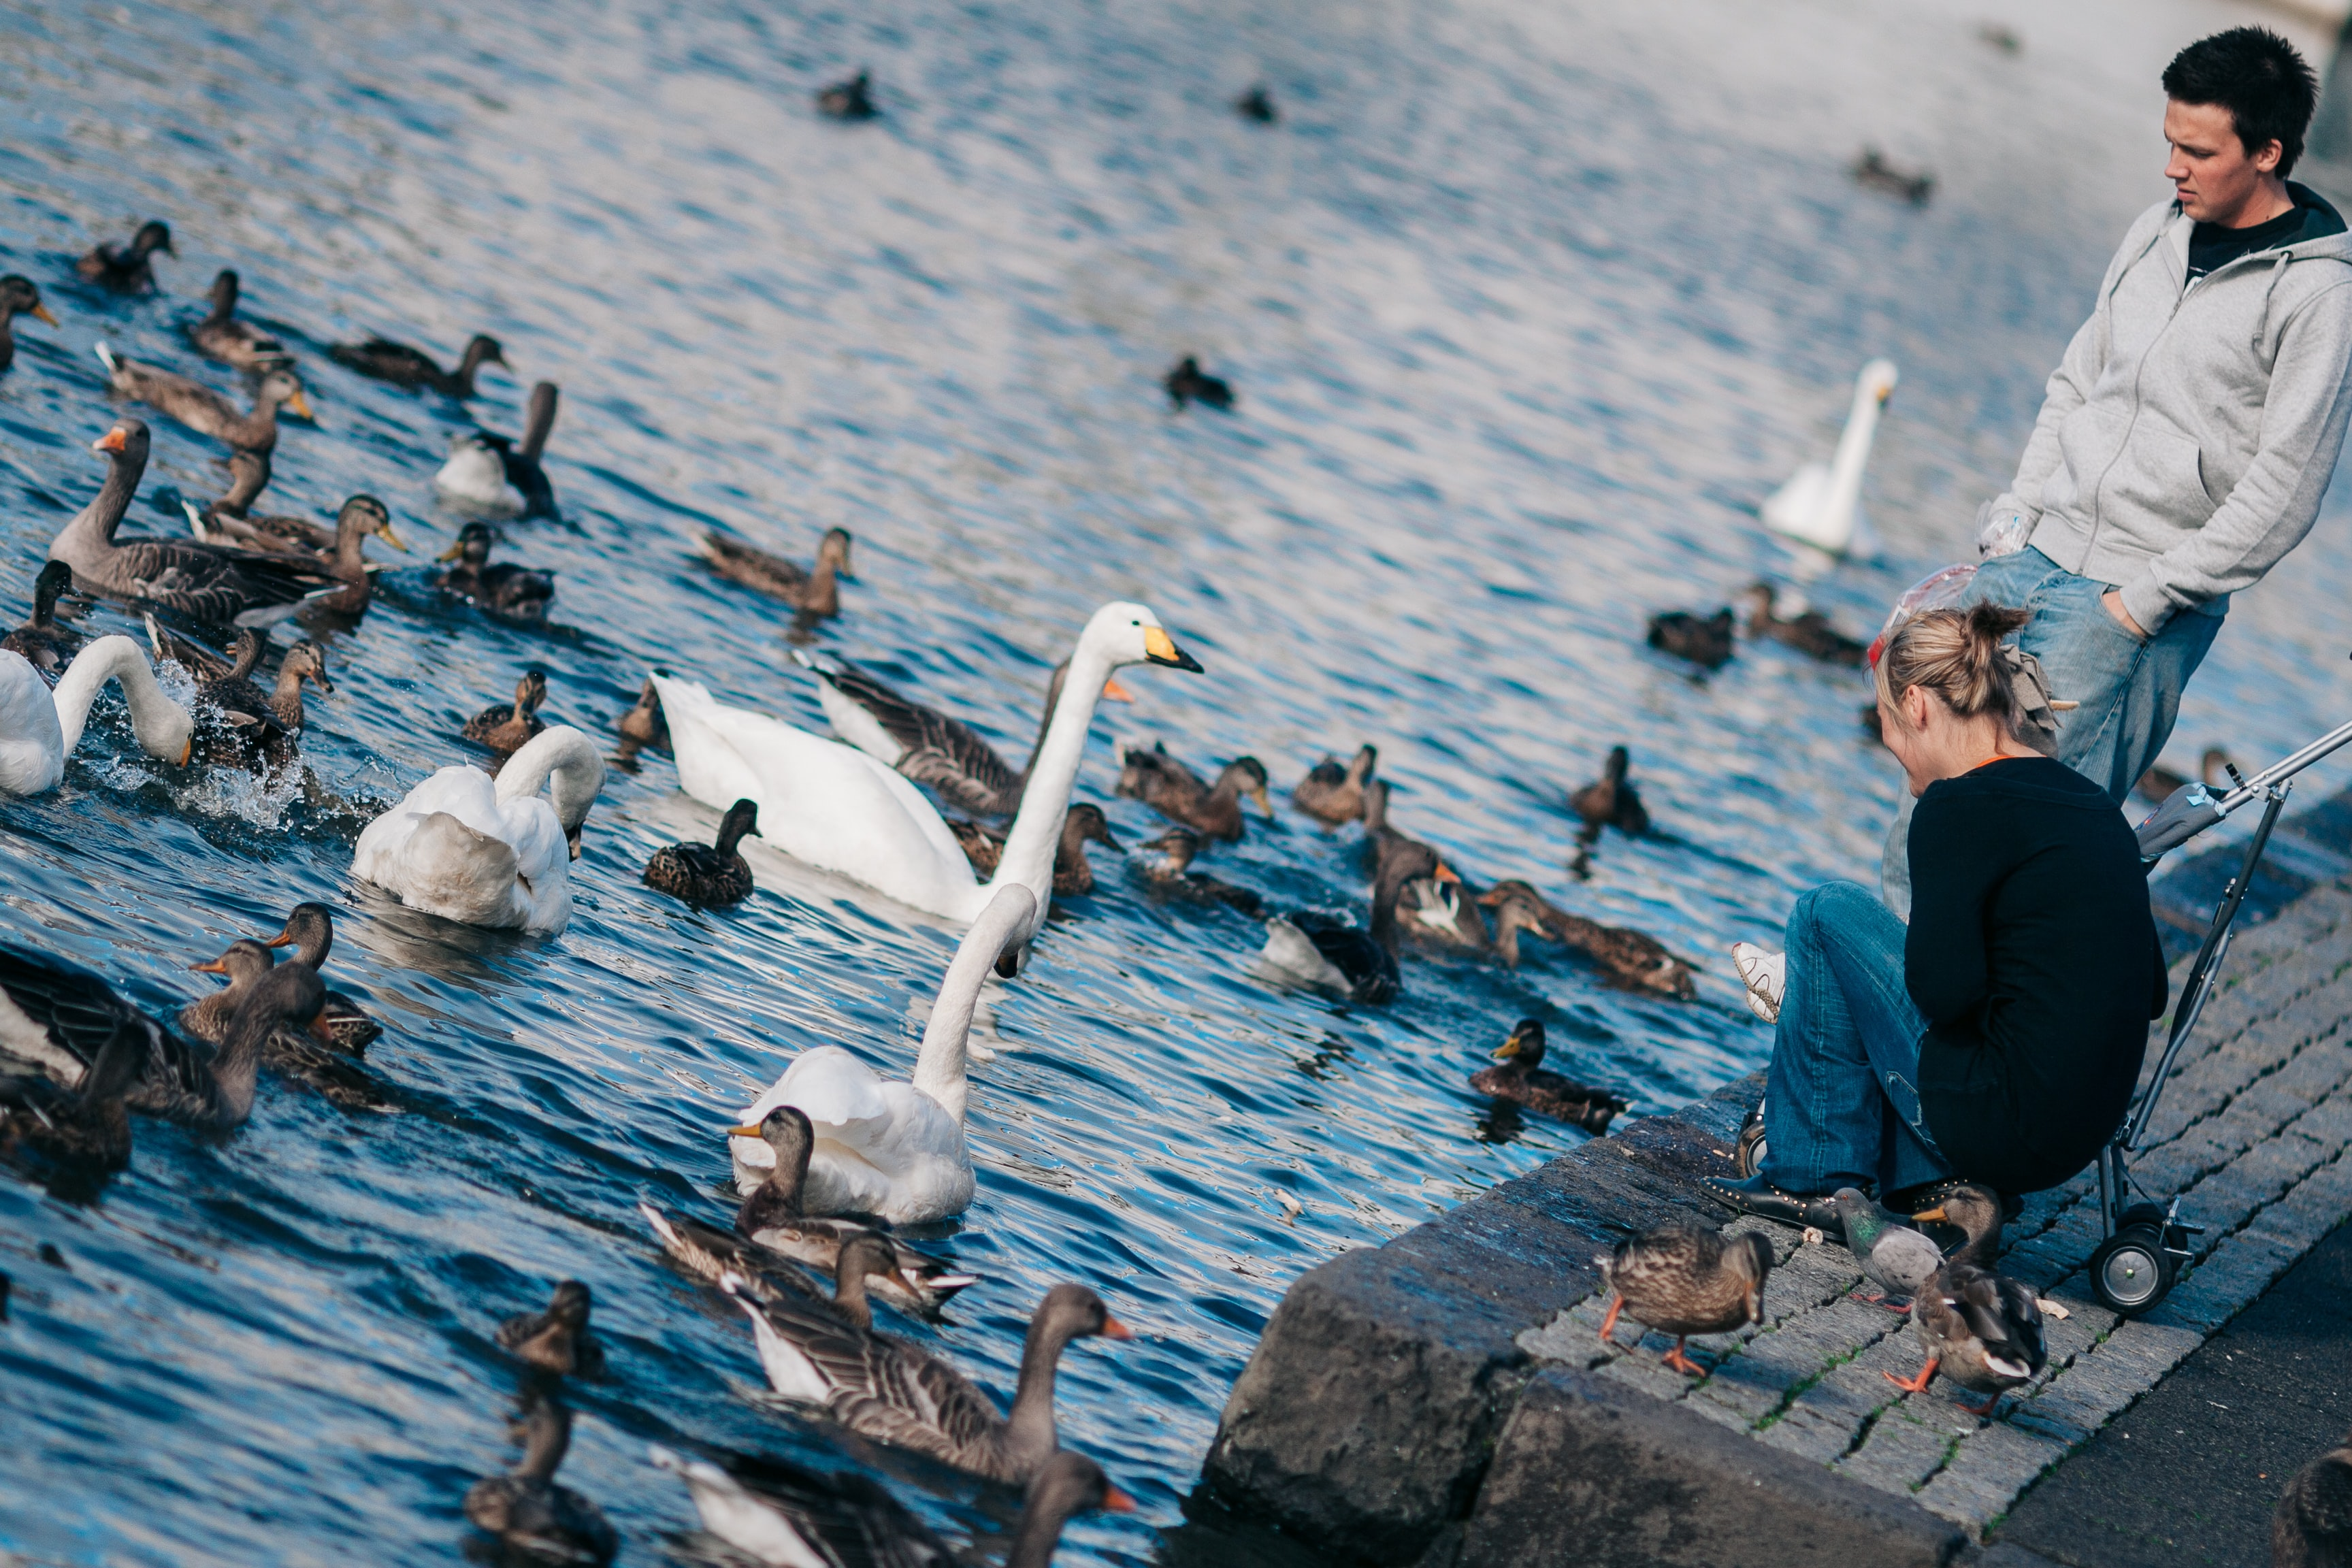 man and woman watching ducks roaming on water